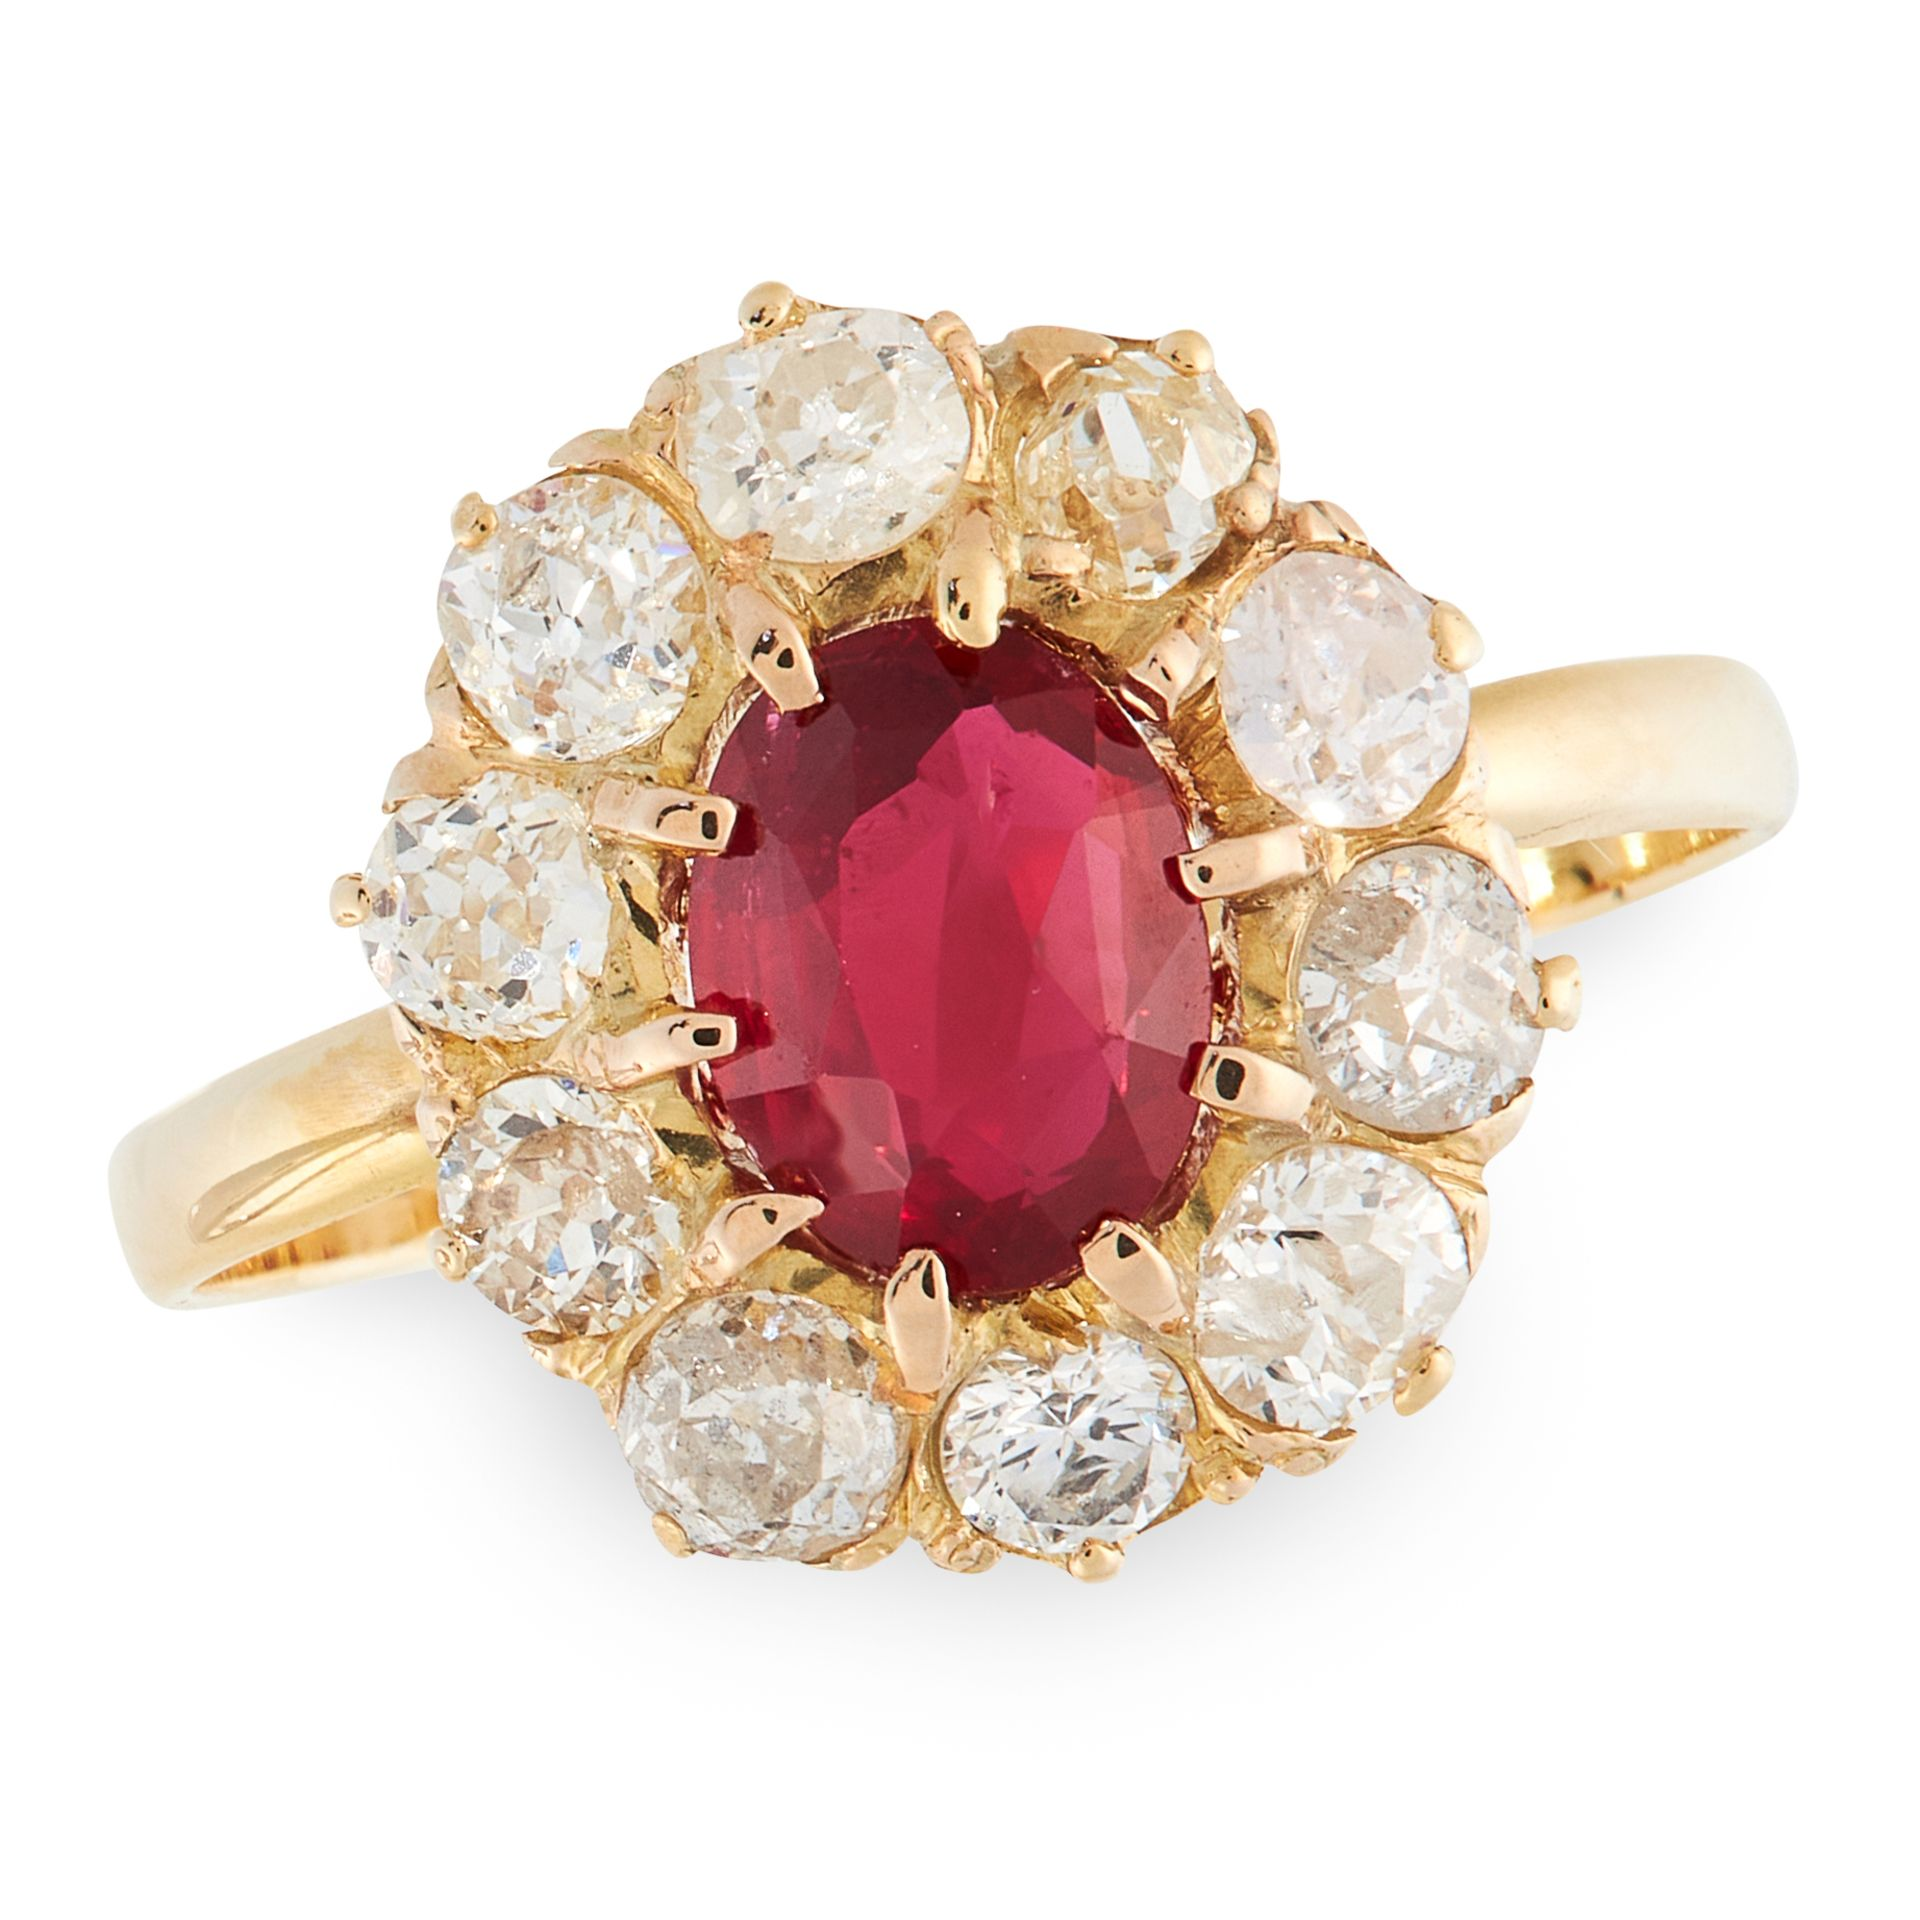 A RUBY AND DIAMOND CLUSTER RING in yellow gold, set with an oval cut ruby of 0.84 carats in a border